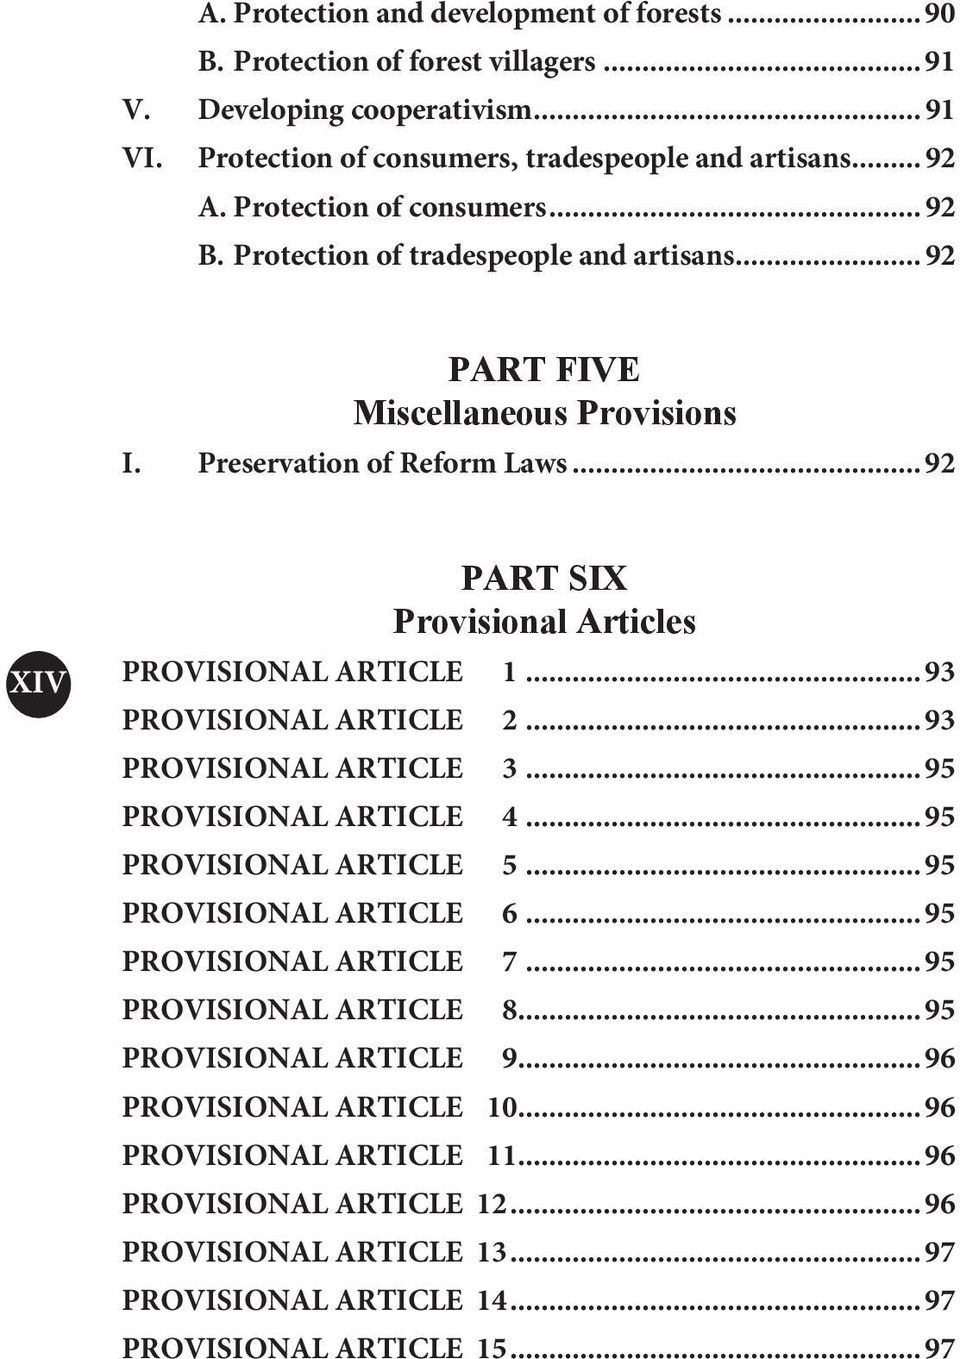 .. 92 XIV PART SIX Provisional Articles PROVISIONAL ARTICLE 1... 93 PROVISIONAL ARTICLE 2... 93 PROVISIONAL ARTICLE 3... 95 PROVISIONAL ARTICLE 4... 95 PROVISIONAL ARTICLE 5.